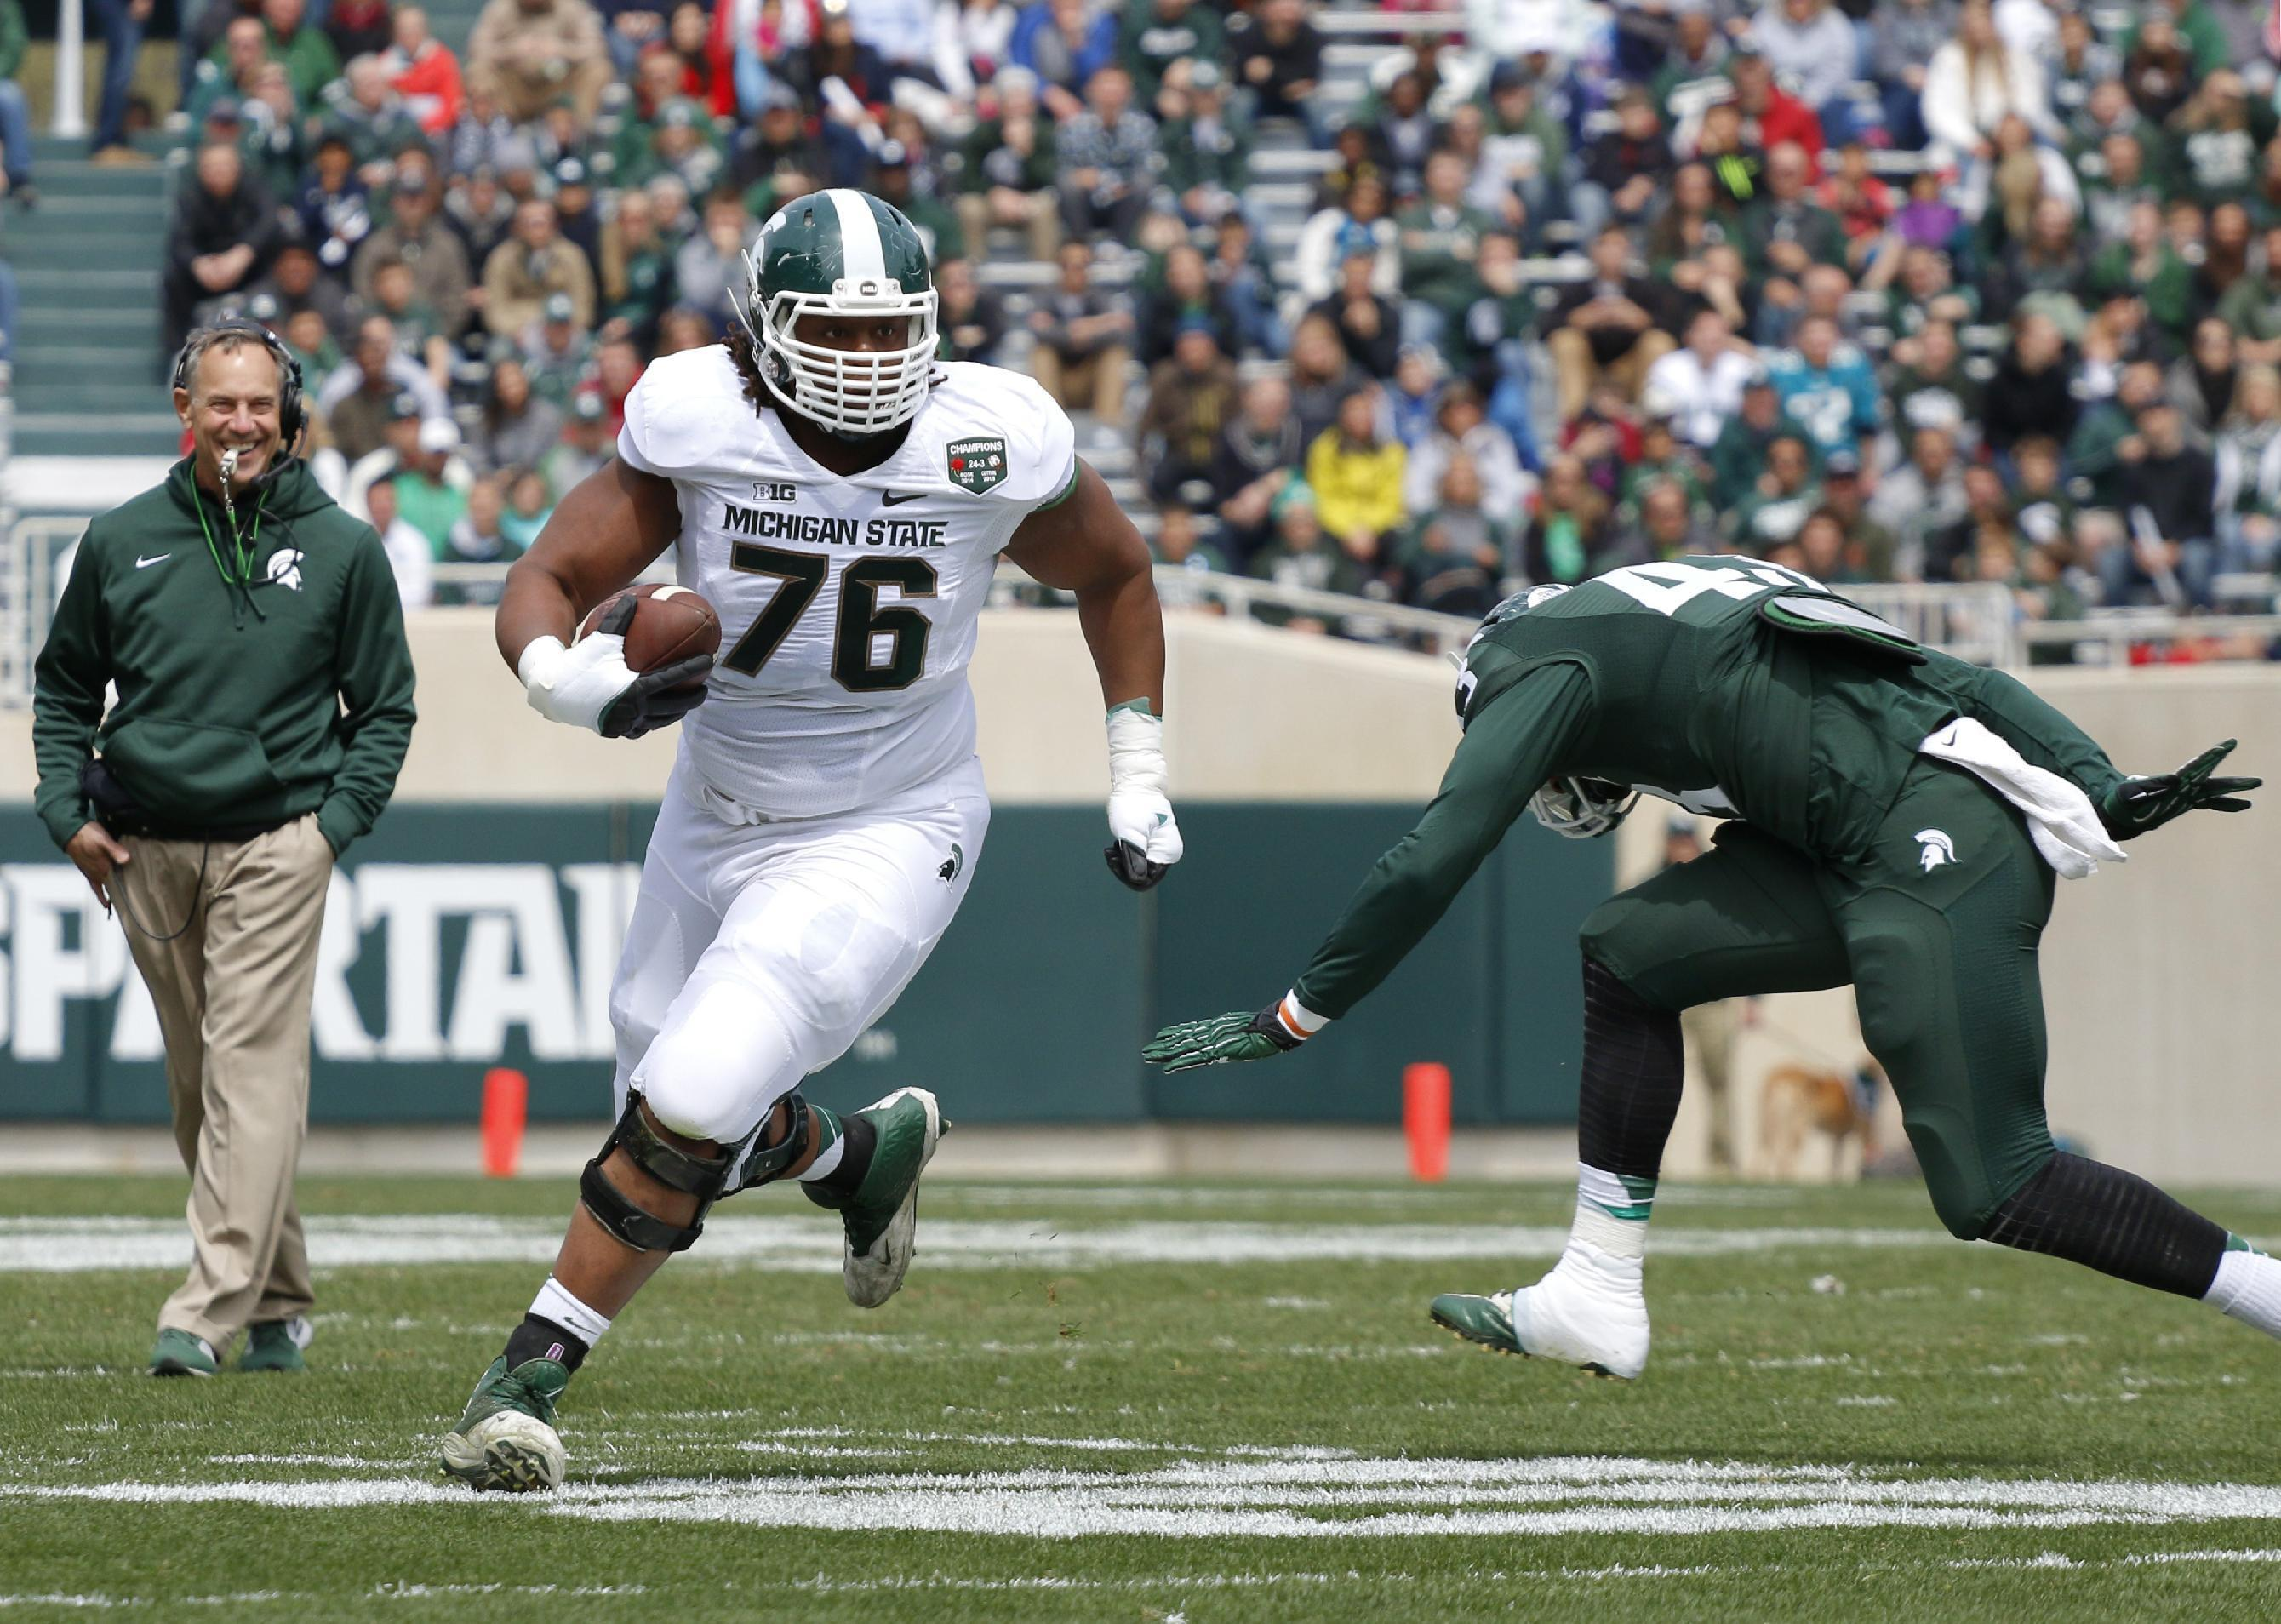 Michigan State ran back-to-back plays for offensive linemen (Video)